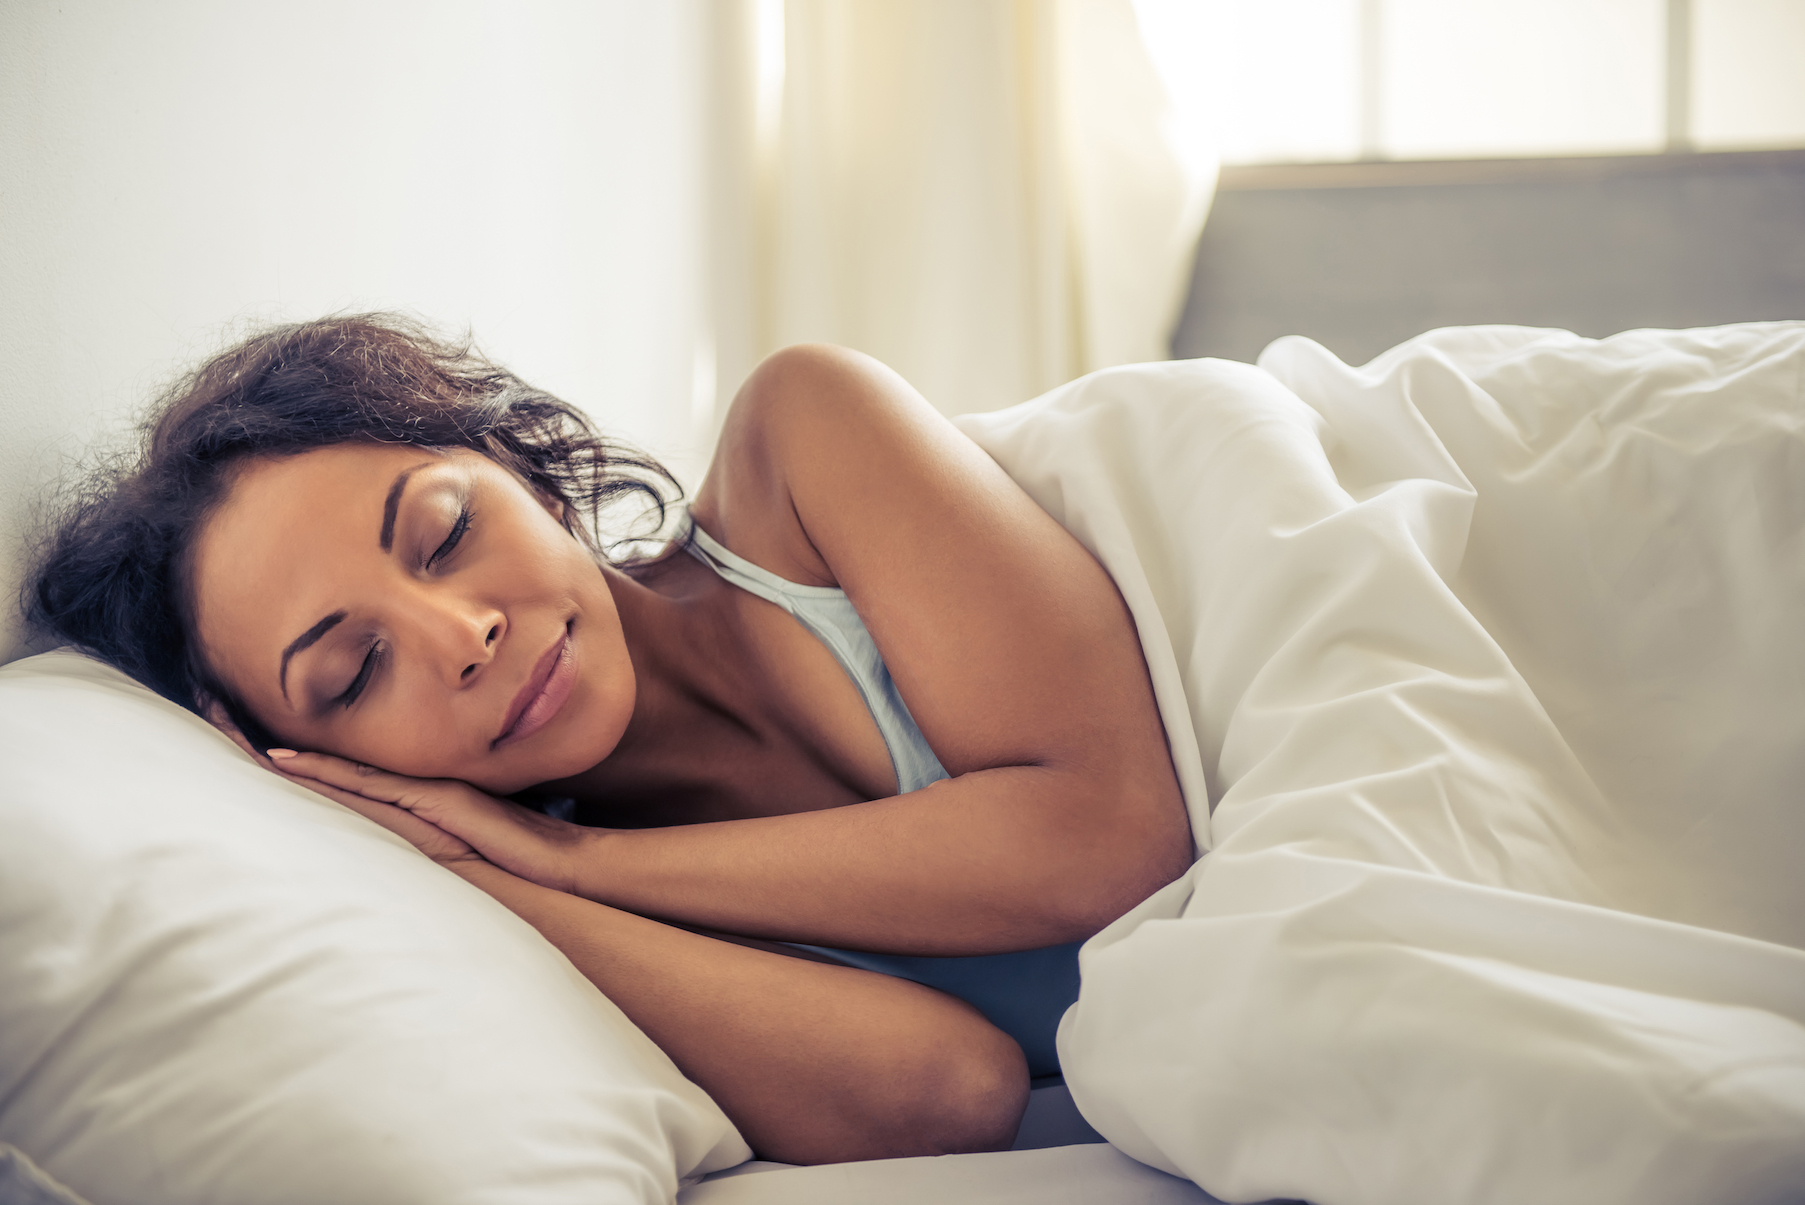 Sleep rhythms vary as much as 10 hours in individuals across any age group, according to a recent study from Harvard University.